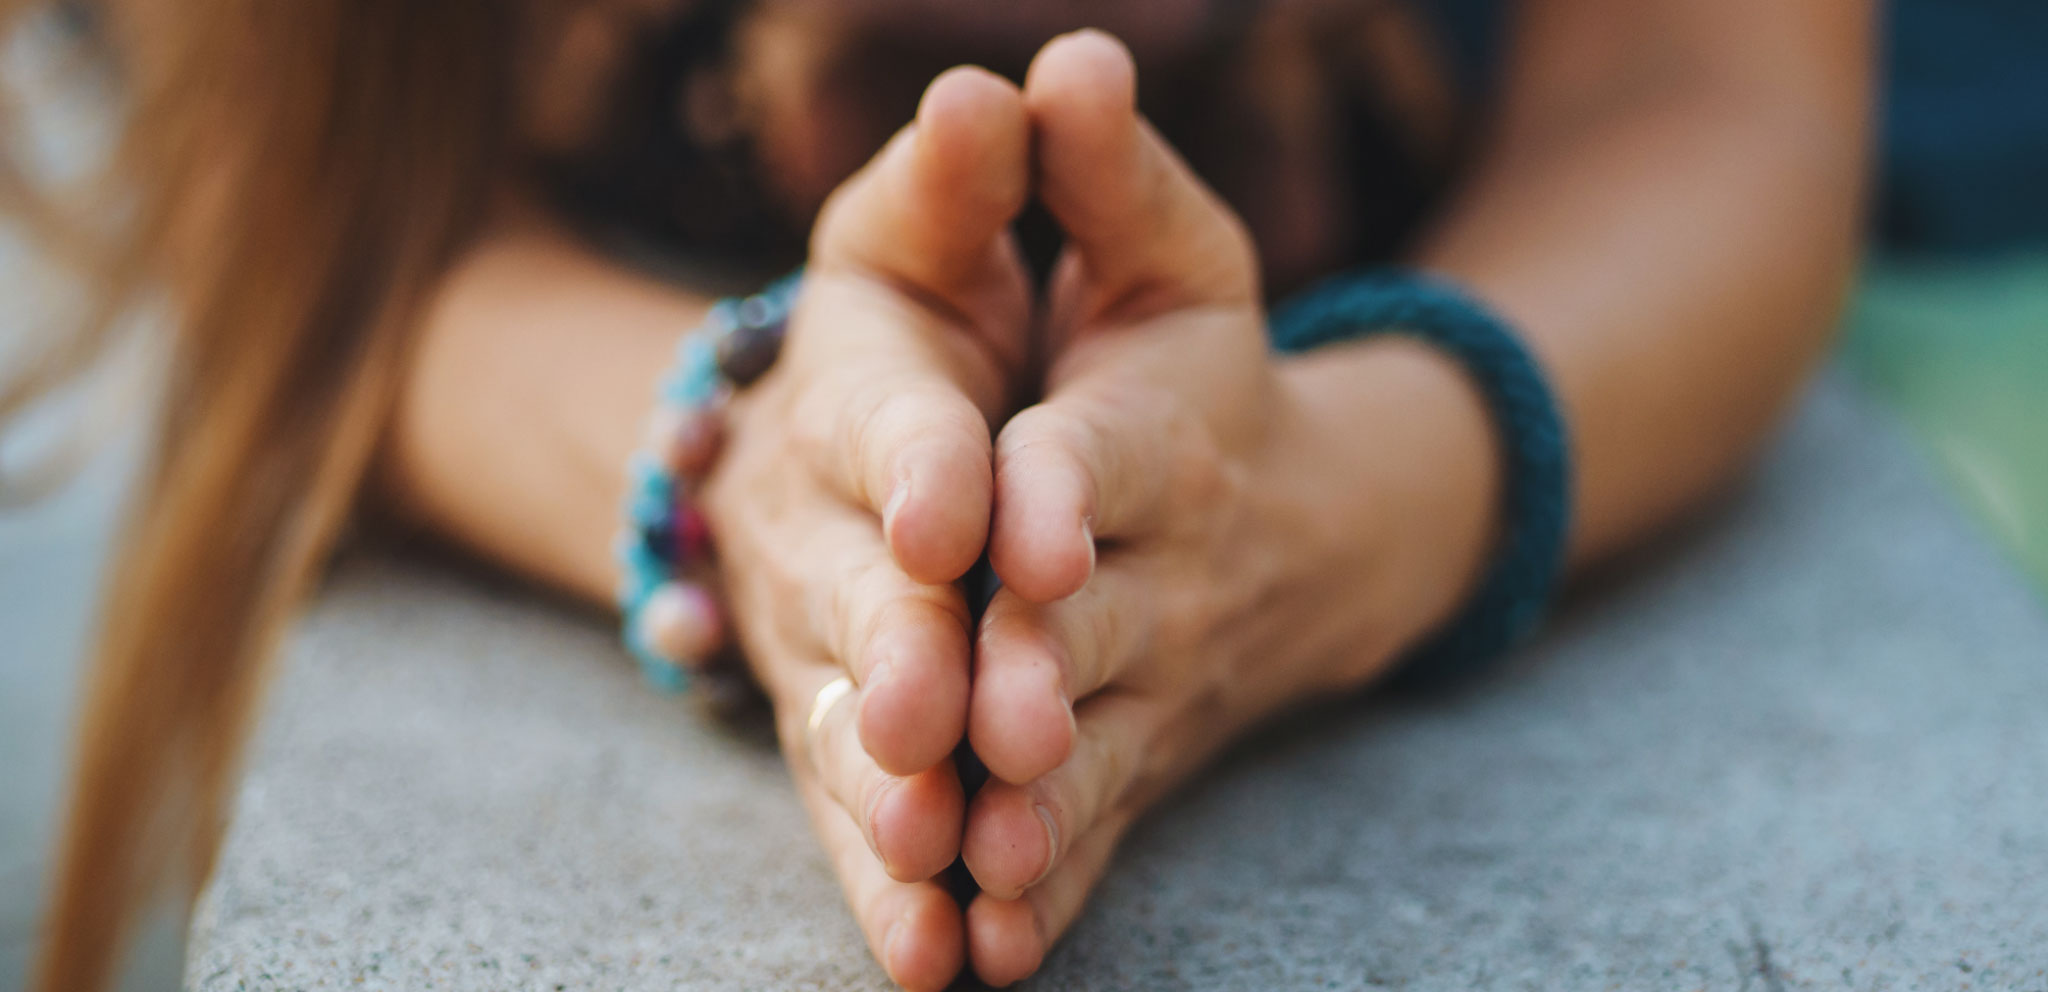 practicing gratitude to fight pain, Practicing Gratitude to Fight Pain